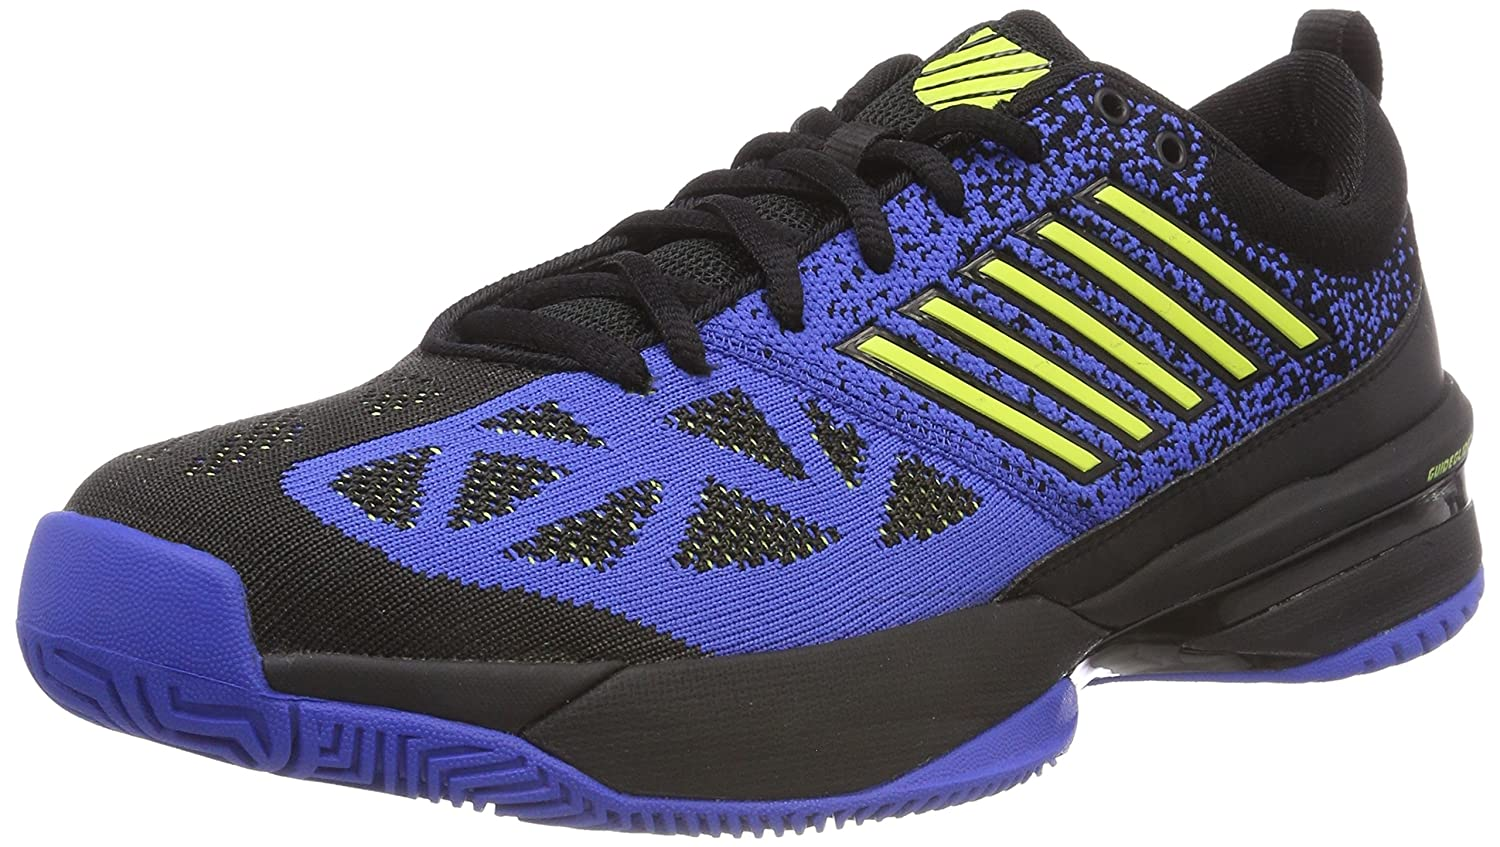 K-Swiss Performance Herren Knitshot Tennisschuhe, 05397083M